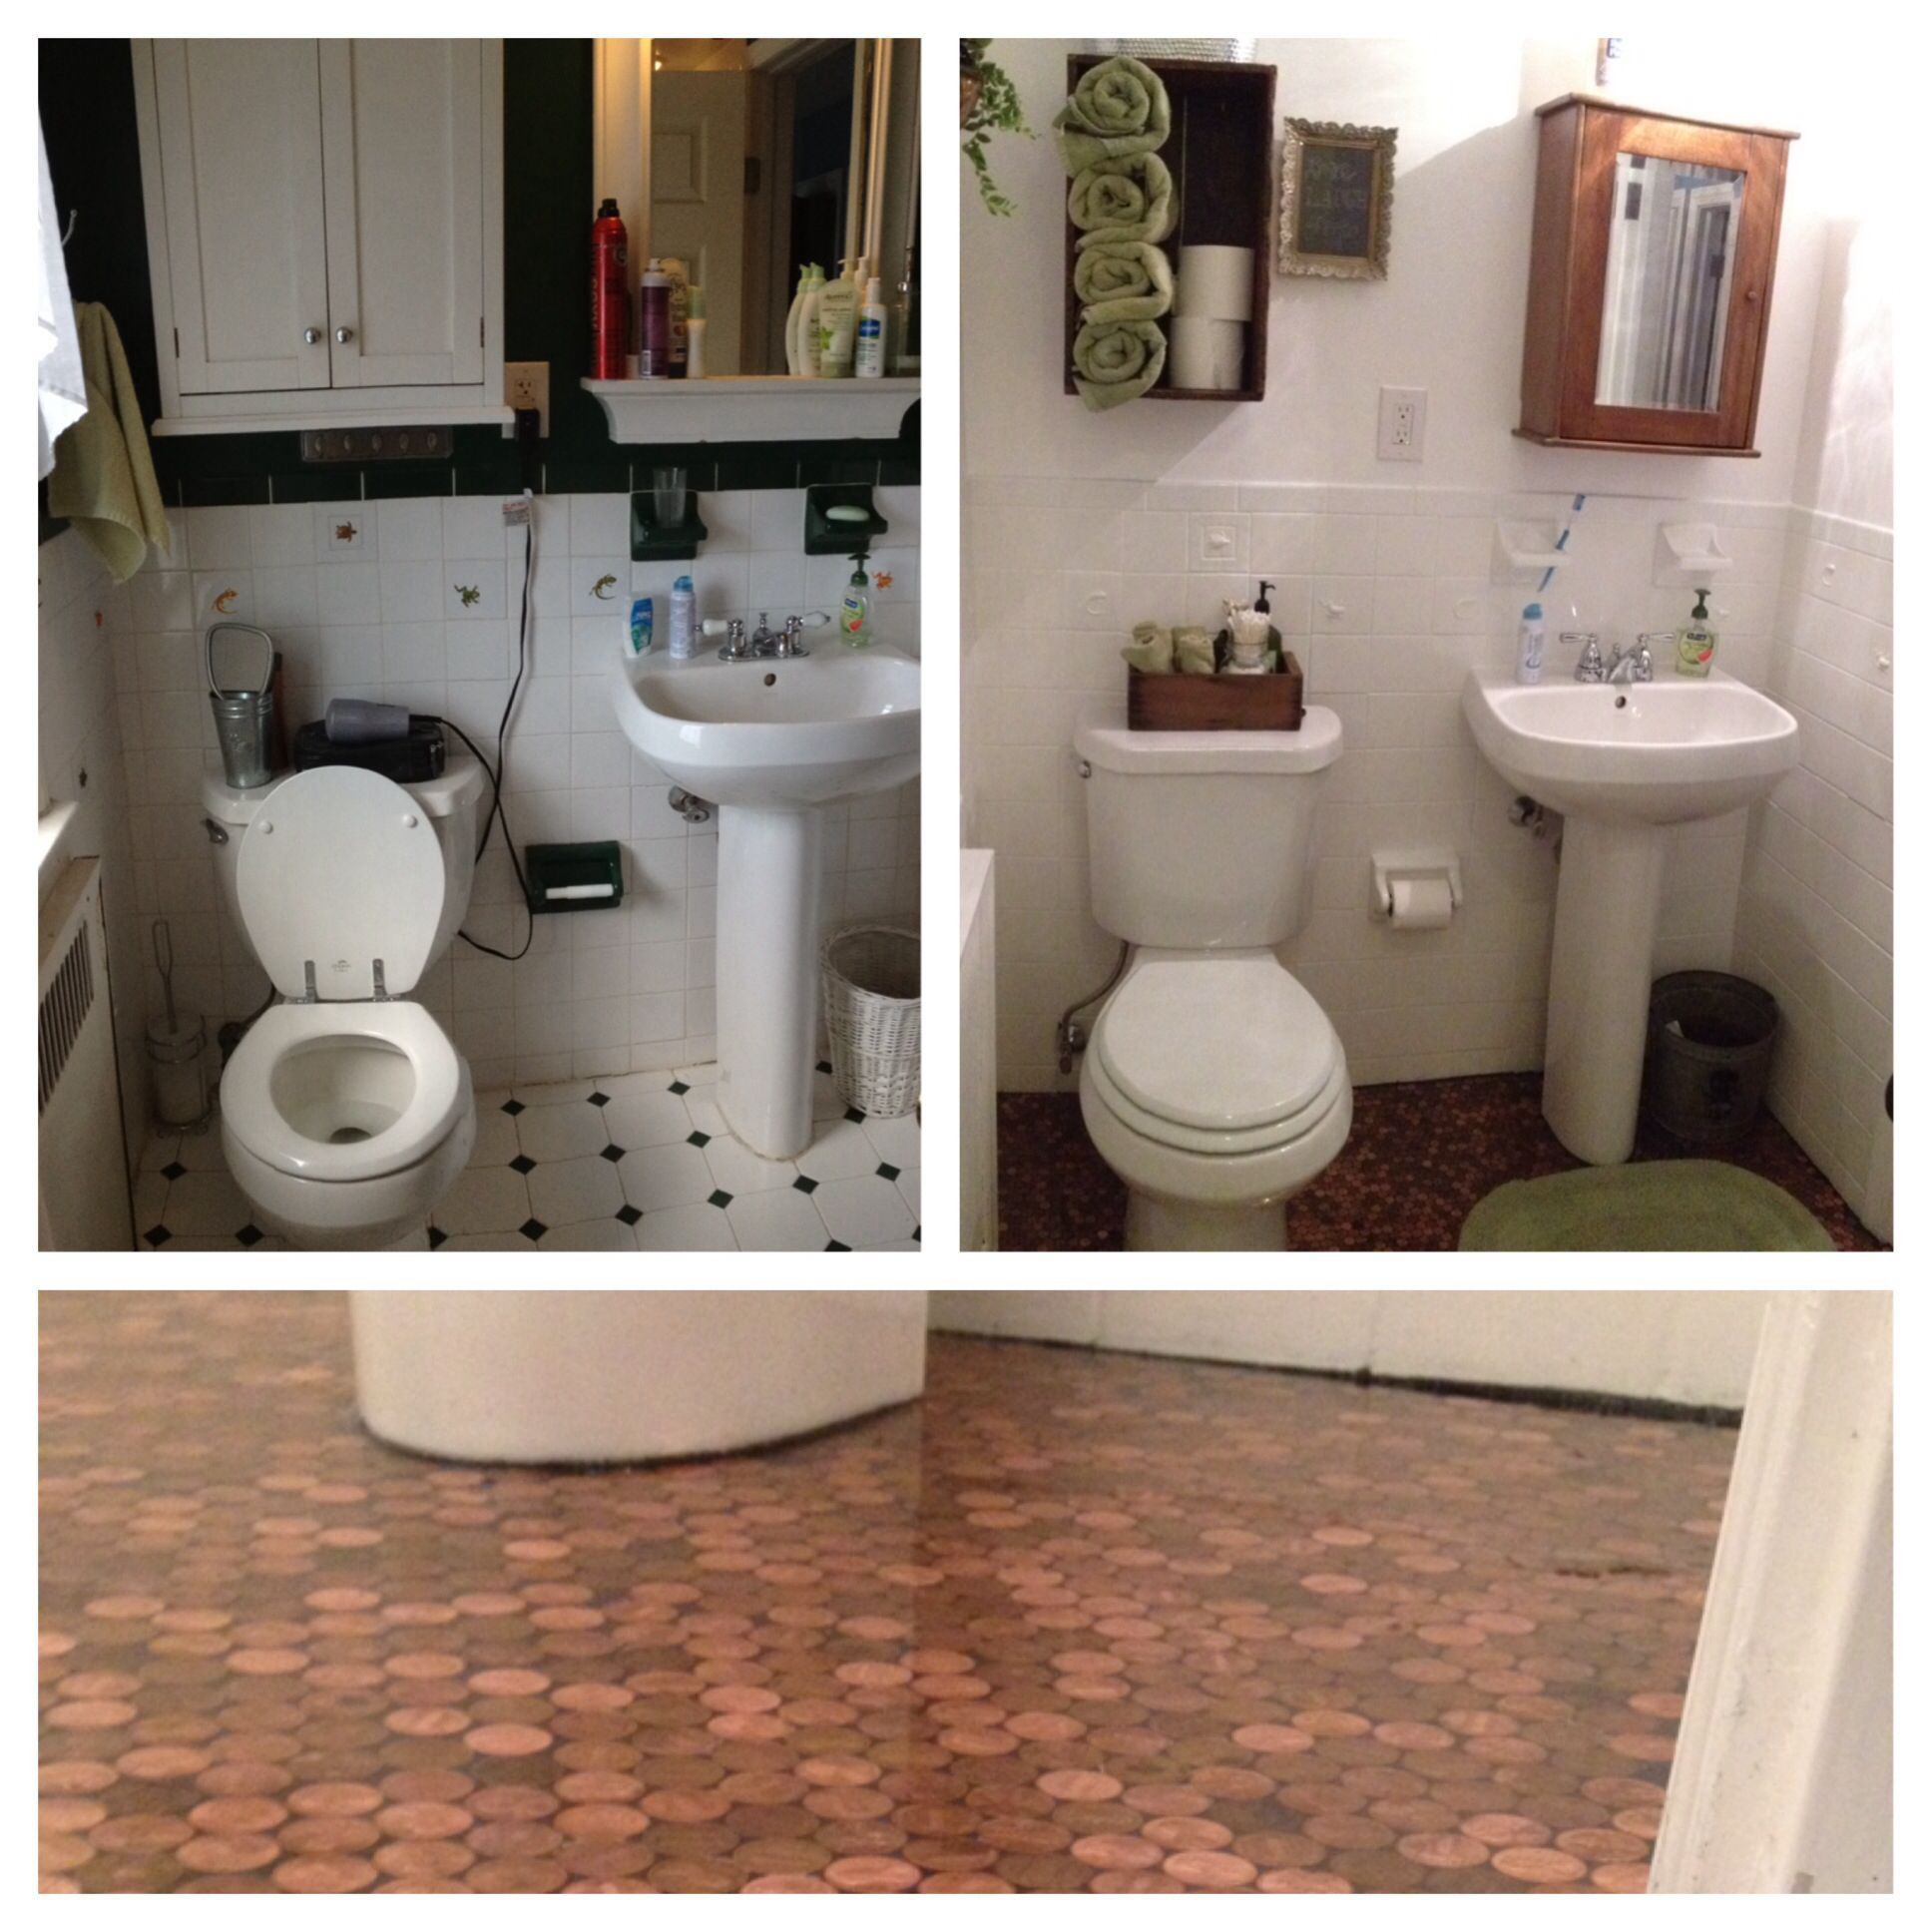 Bathroom makeover with a penny floor epoxy paint over ceramic bathroom makeover with a penny floor epoxy paint over ceramic wall tile started with dailygadgetfo Choice Image